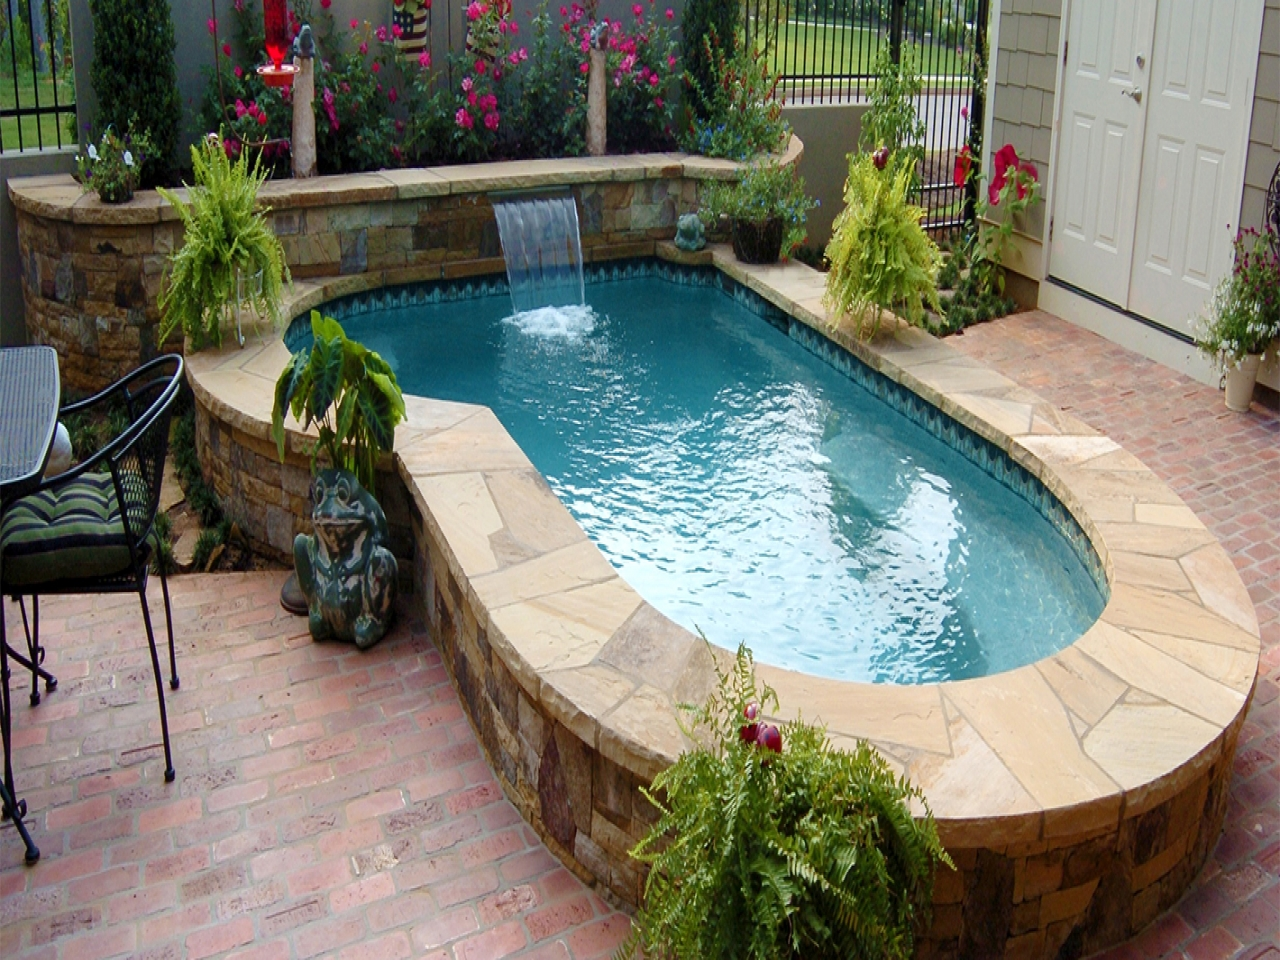 25 Best Gallery of Small Swimming Pools for Small Yards ...